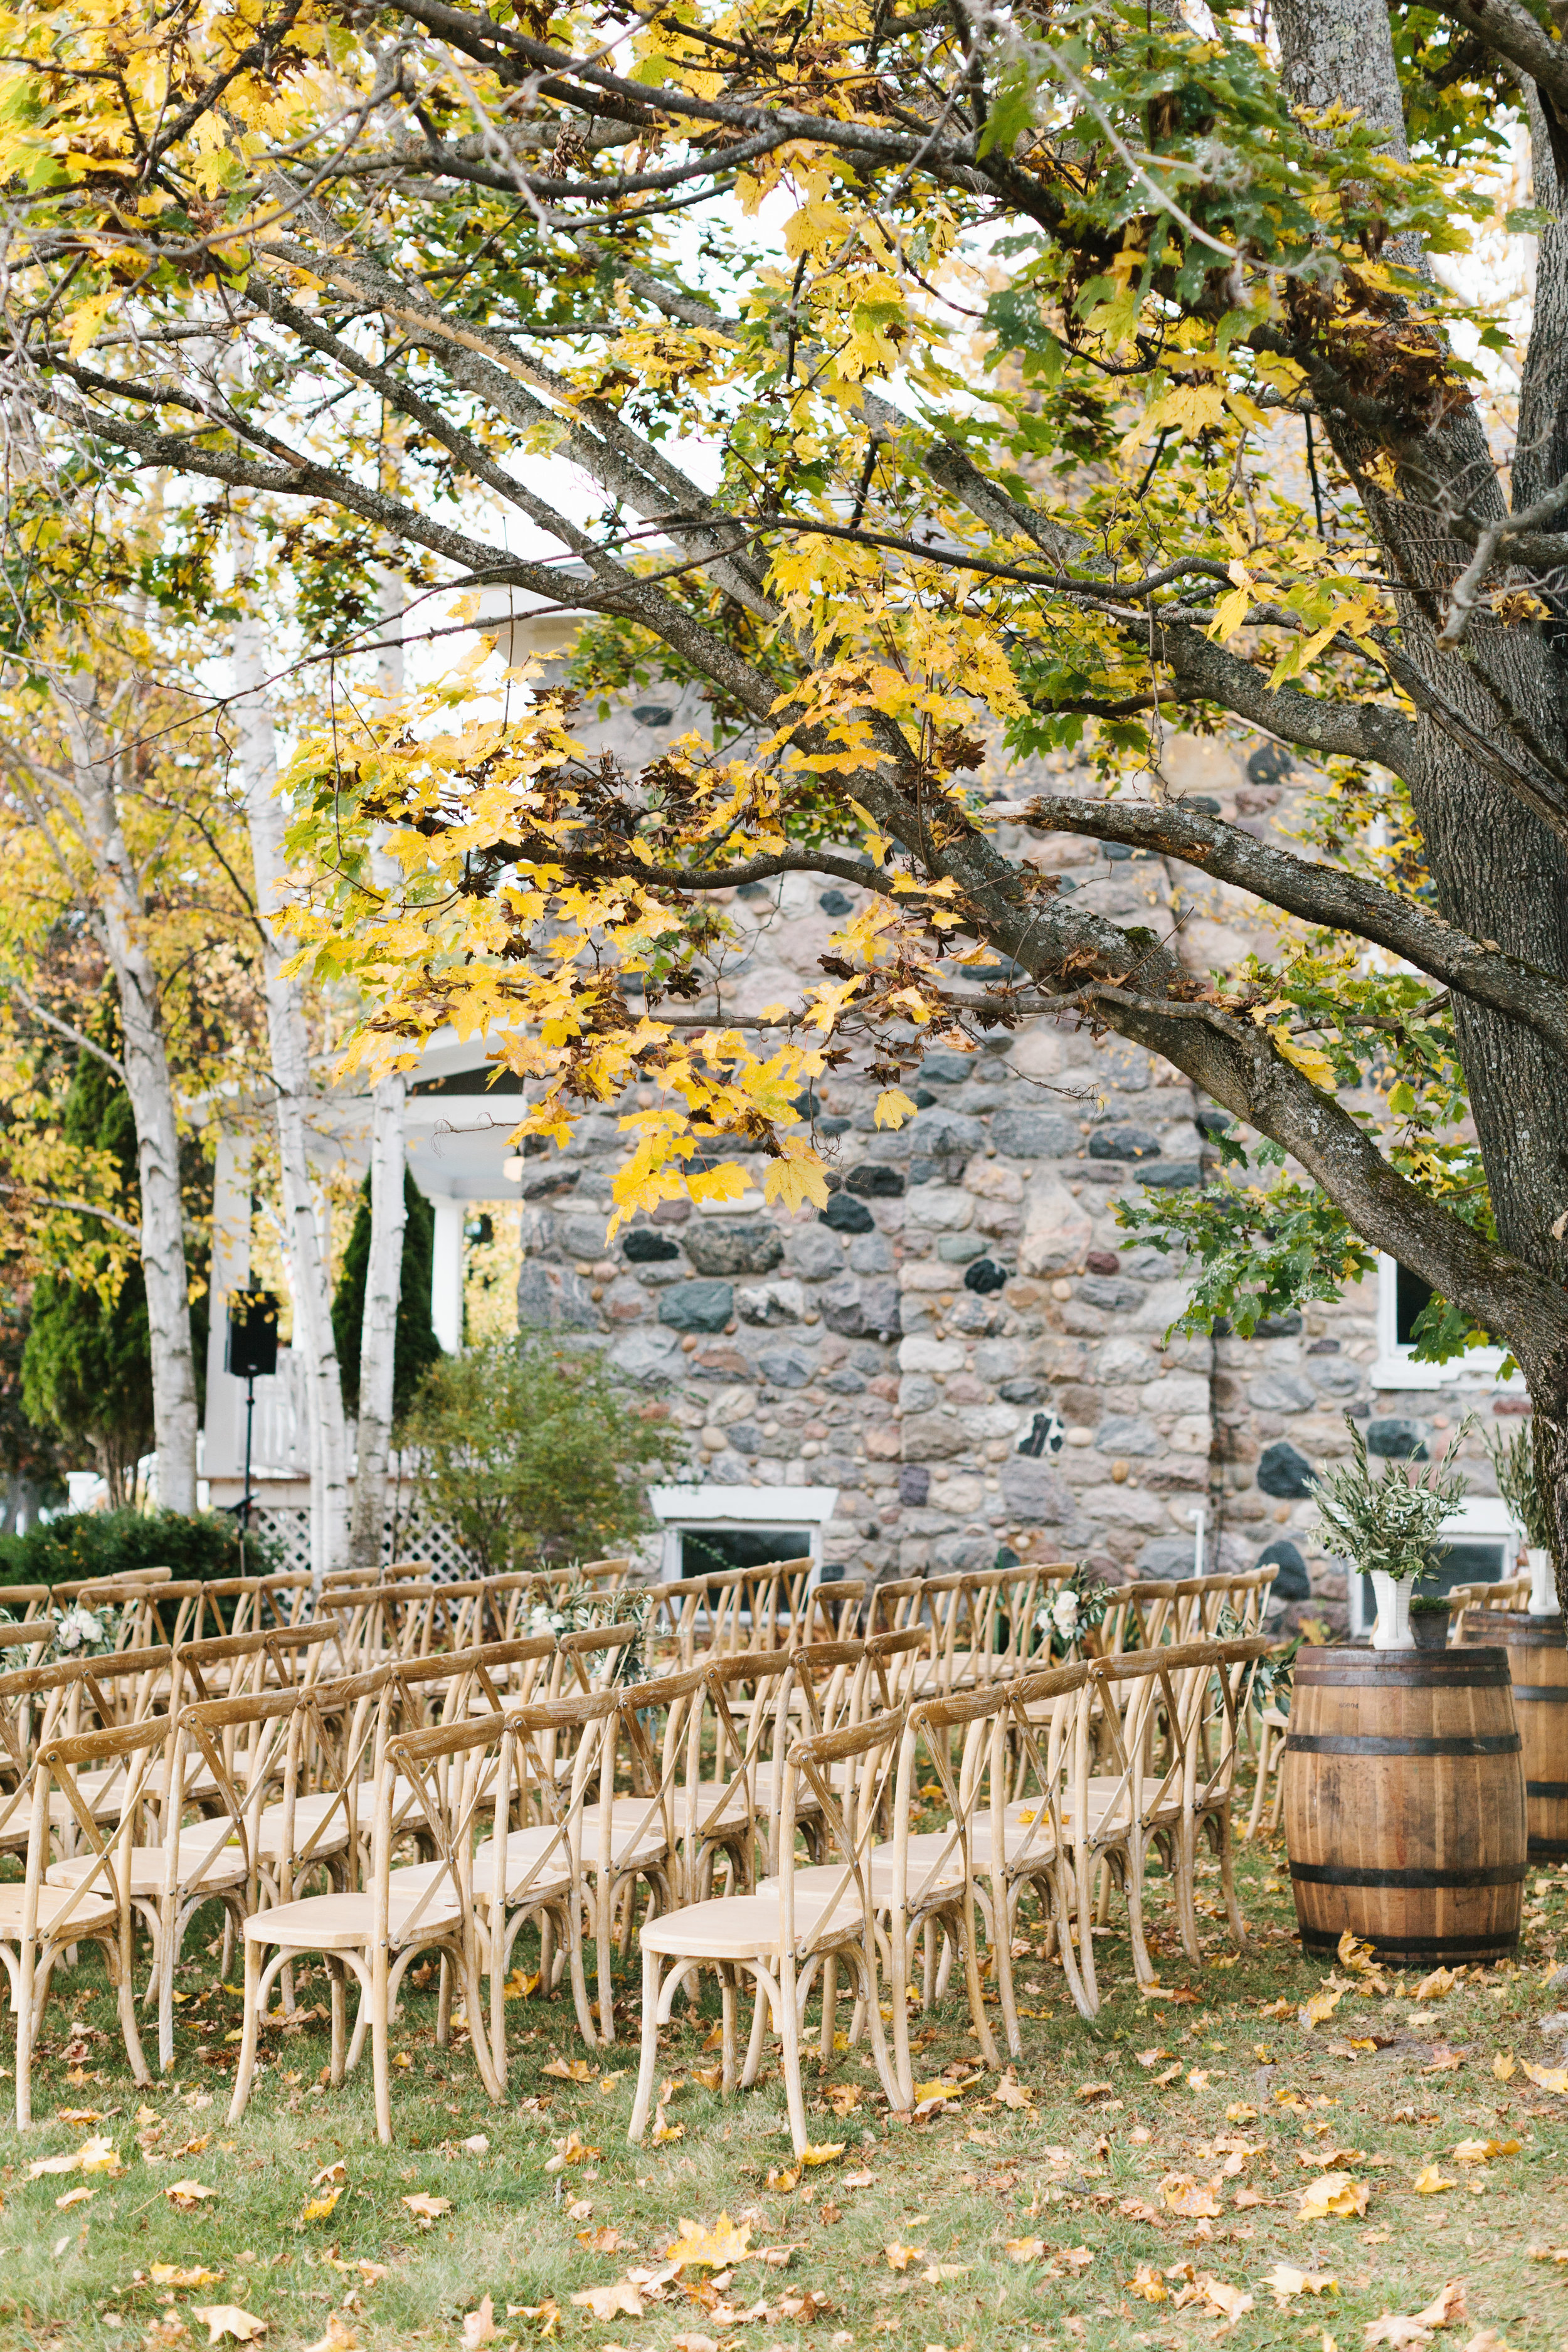 Fall Farmhouse Wedding   Melissa & Daniel of Traverse City, MI wed October 21, 2017 beneath a warm blue sky during the season's peak colors. The too good to be true weather was enjoyed by their 75 guests with a romantic, elegant and fun filled evening.